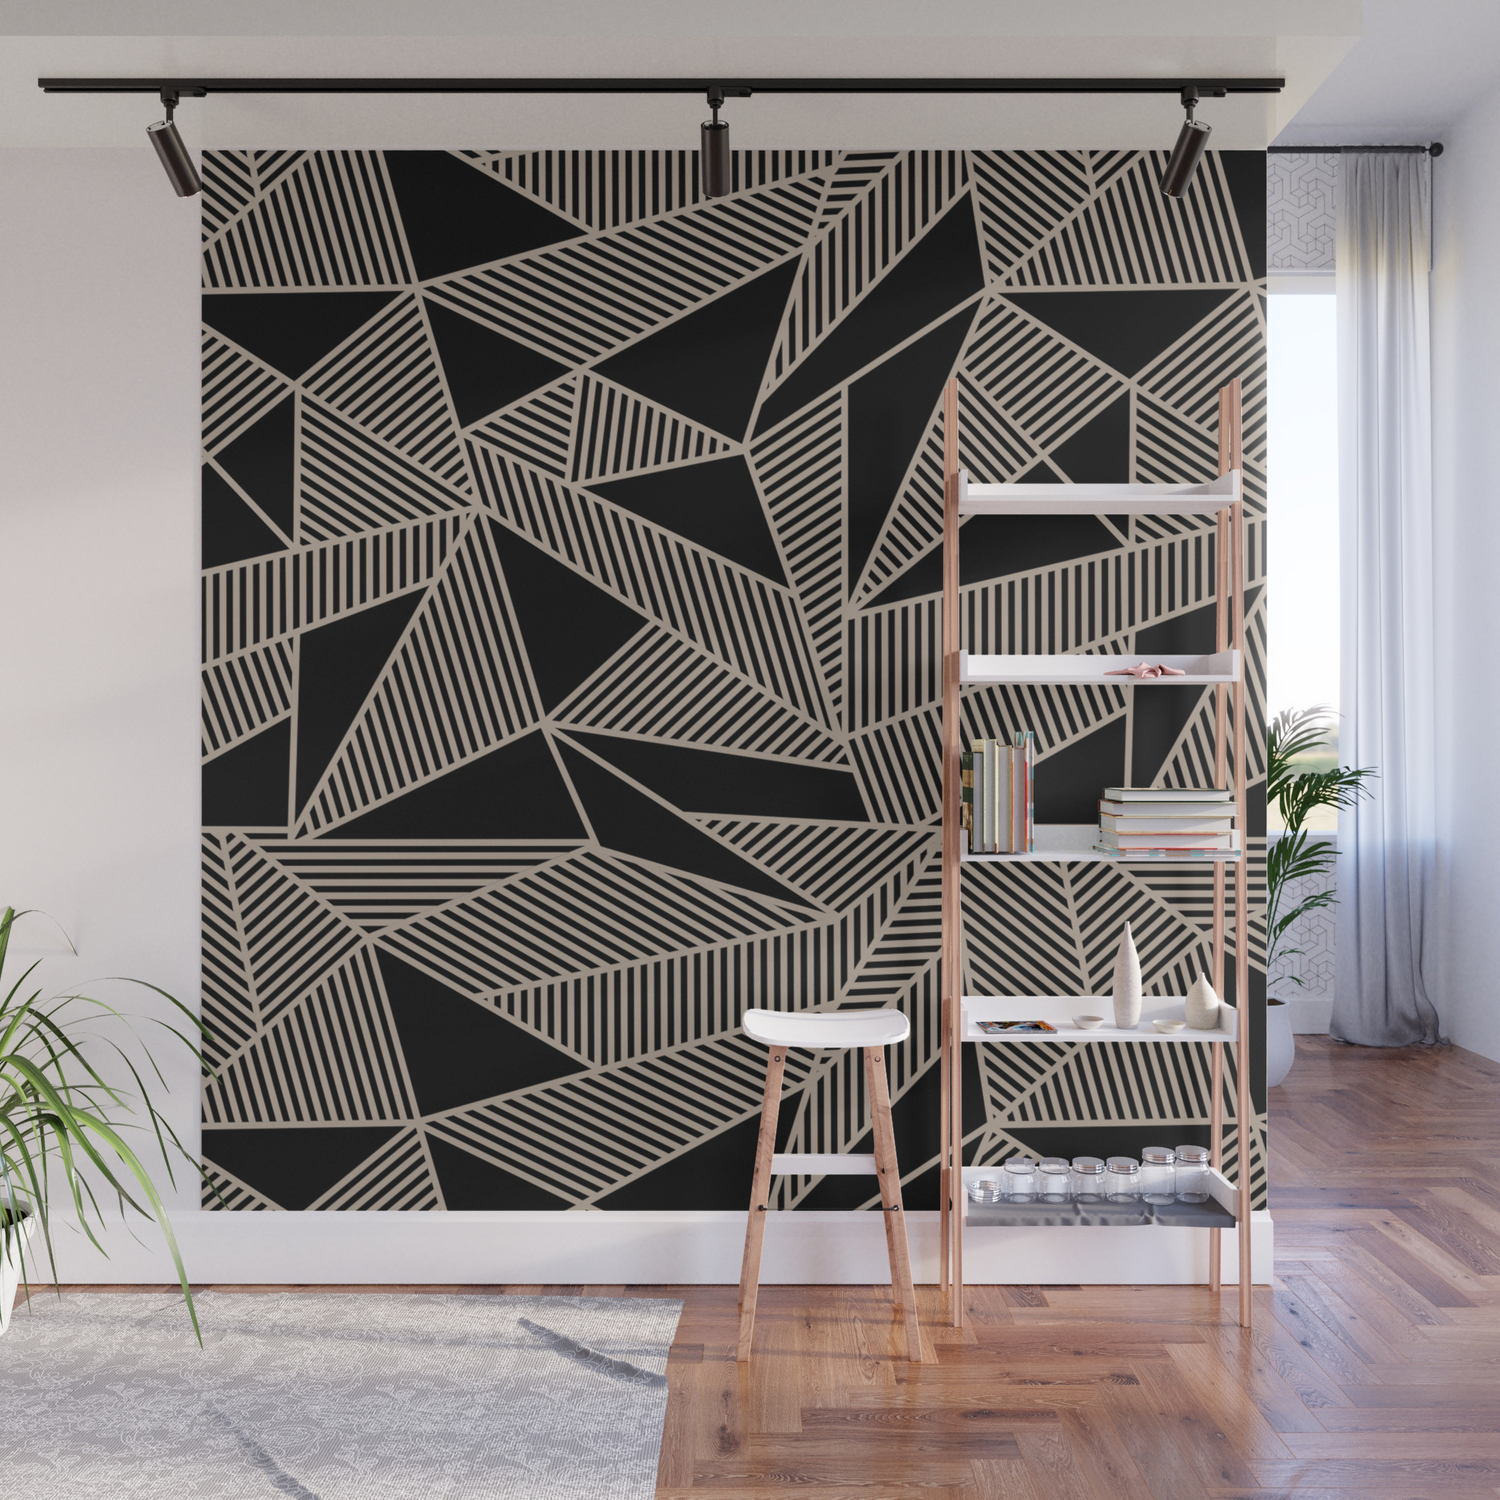 Geometric Abstract Origami Inspired Pattern Wall Mural By Sunnybunny Society6